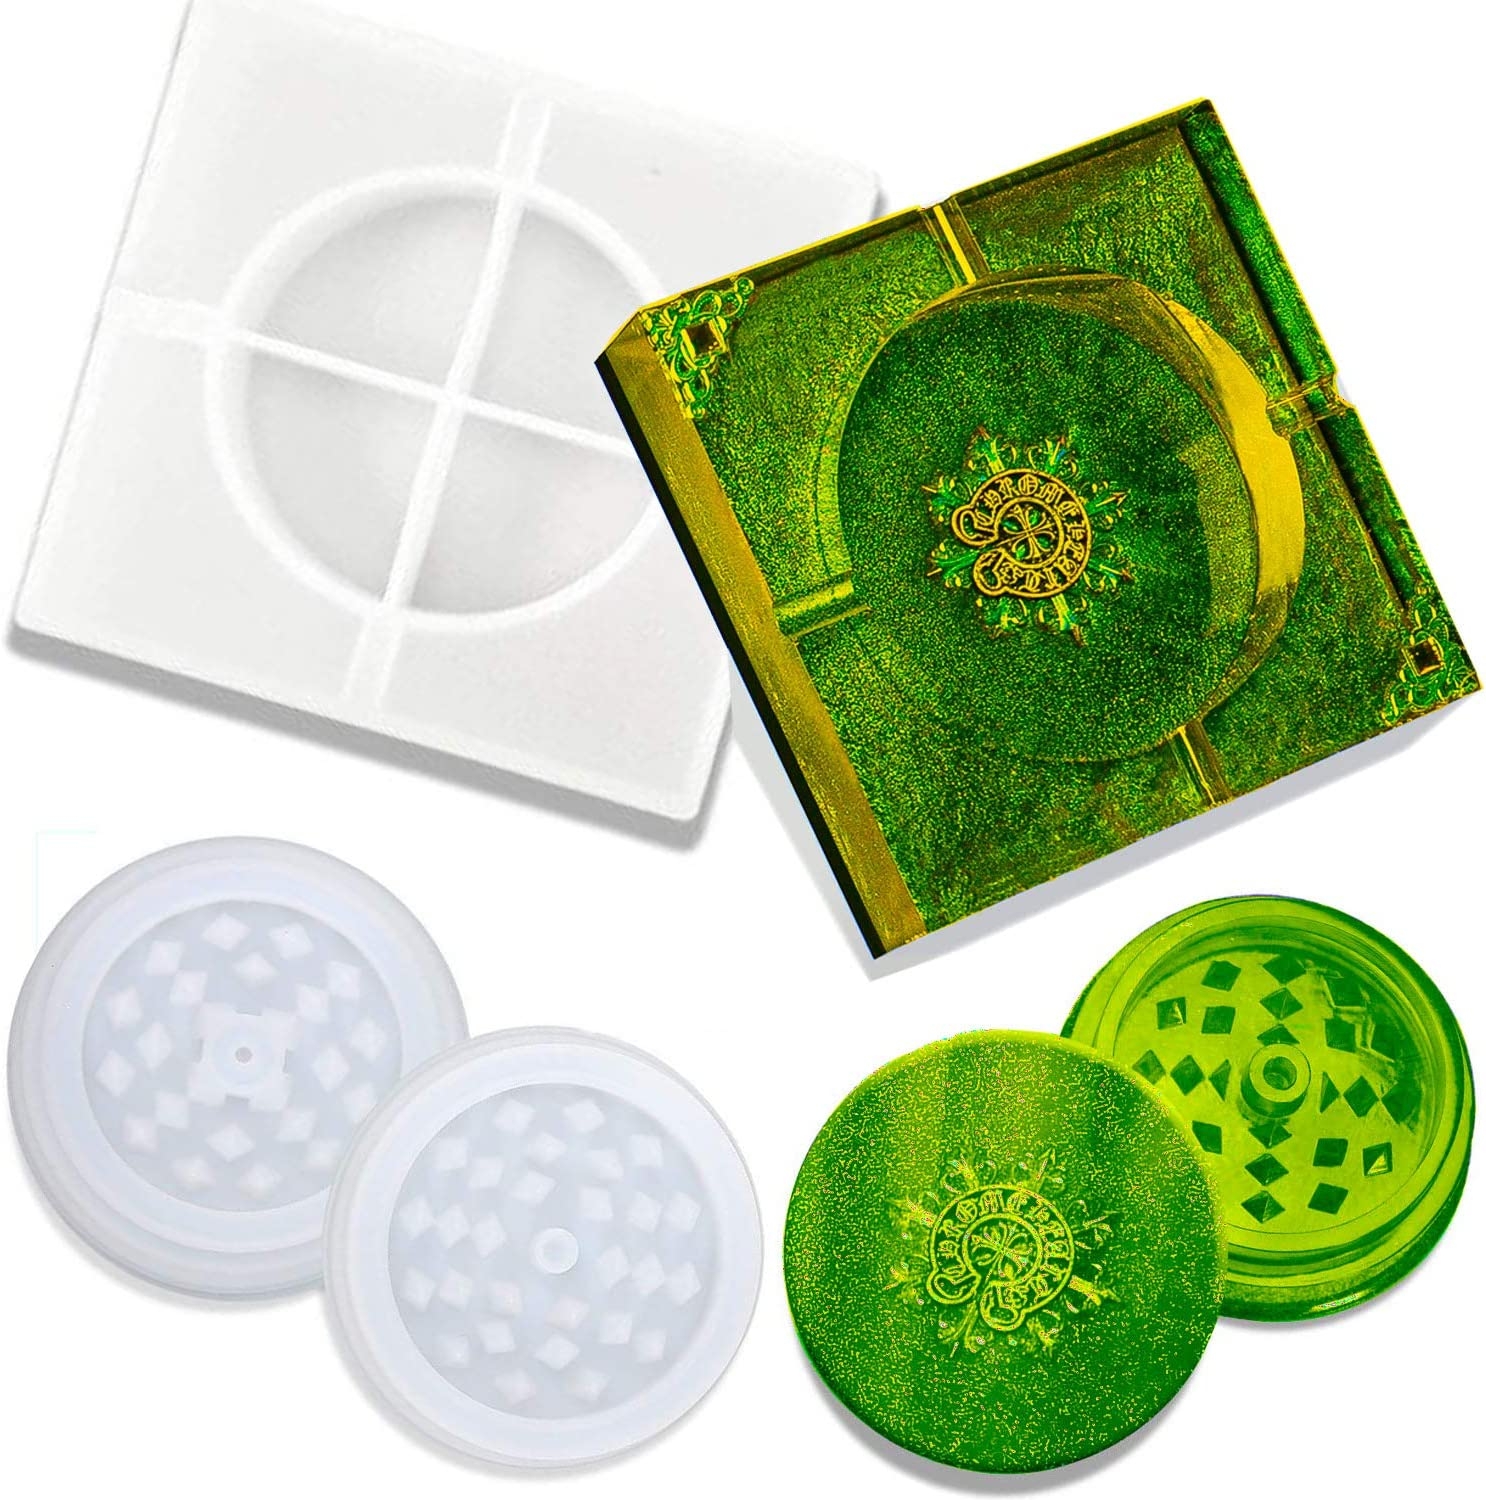 35% OFF Finally popular brand Silicone Resin Mold Molds Grinder Ashtray